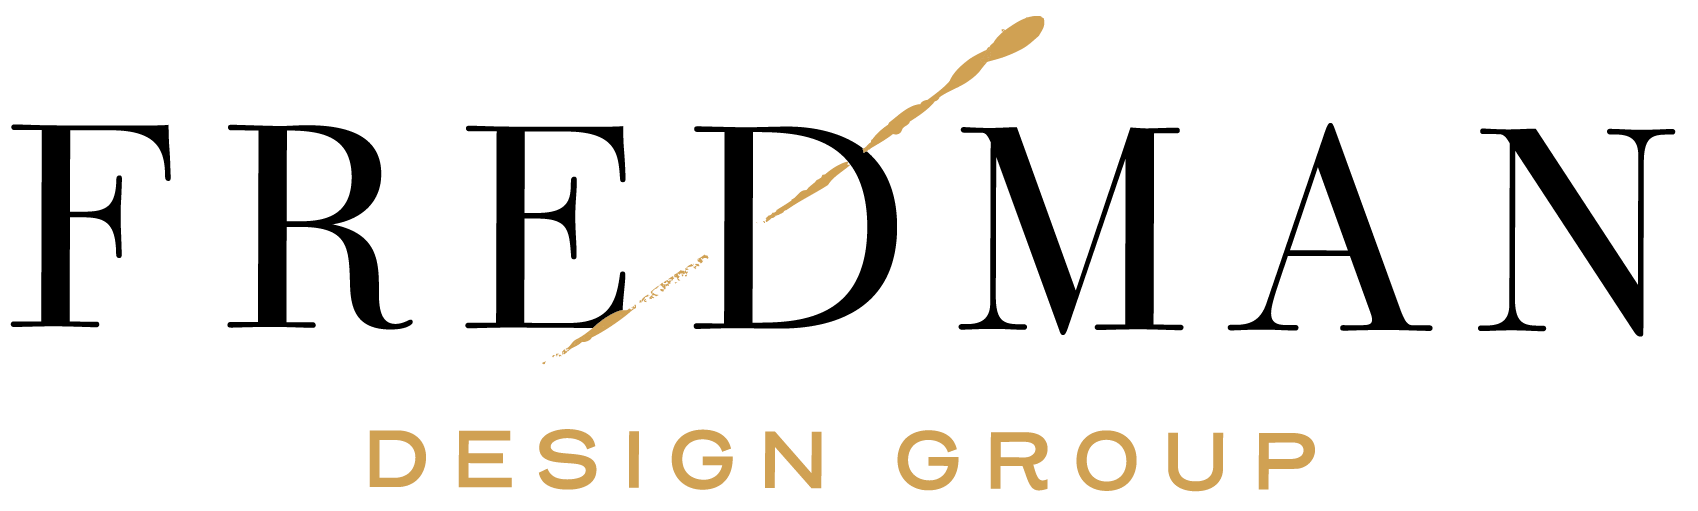 Fredman Design Group logo